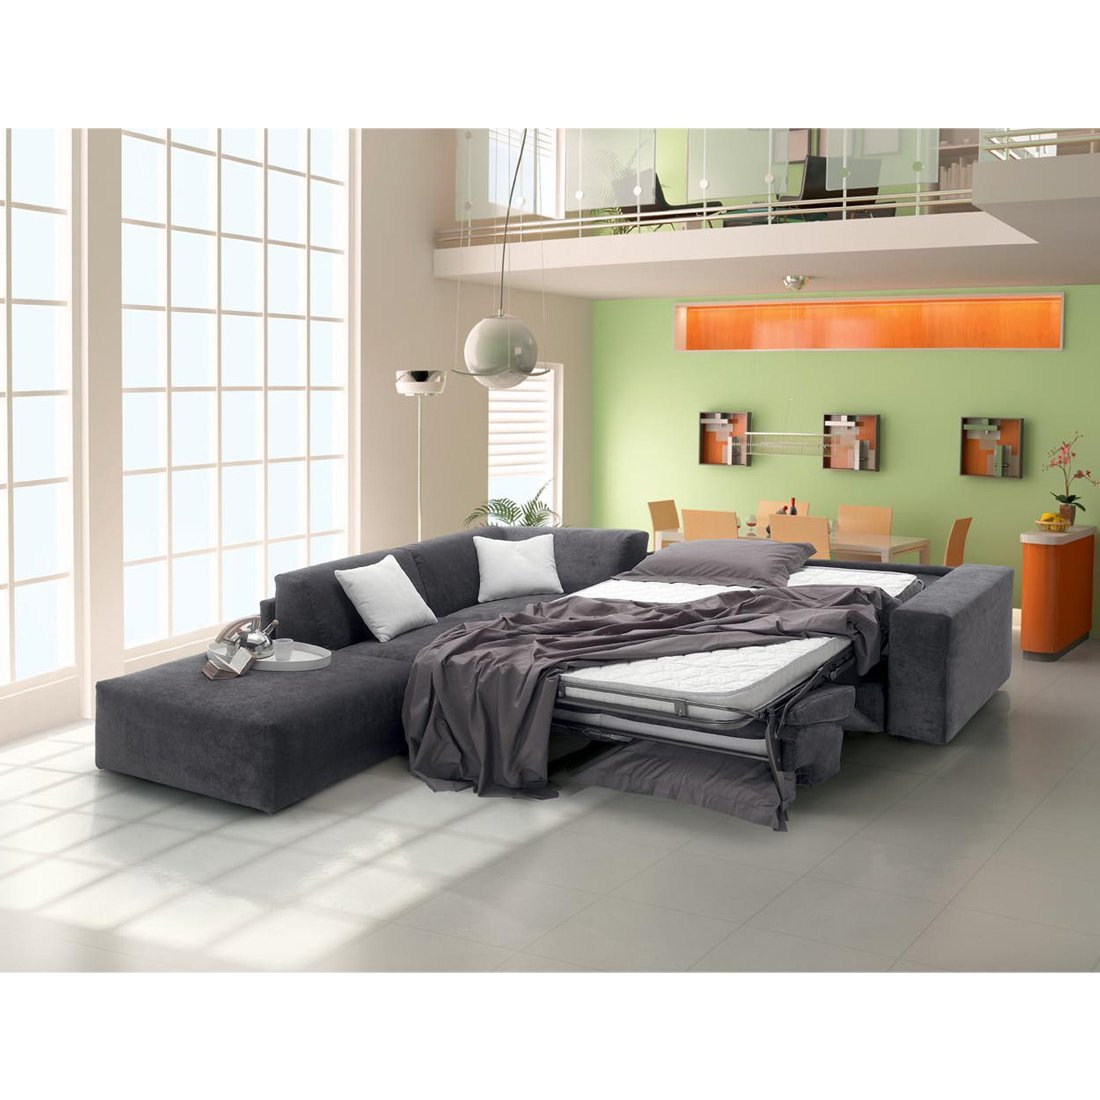 Canap d 39 angle convertible gris meubles et atmosph re - Canape d angle convertible but ...